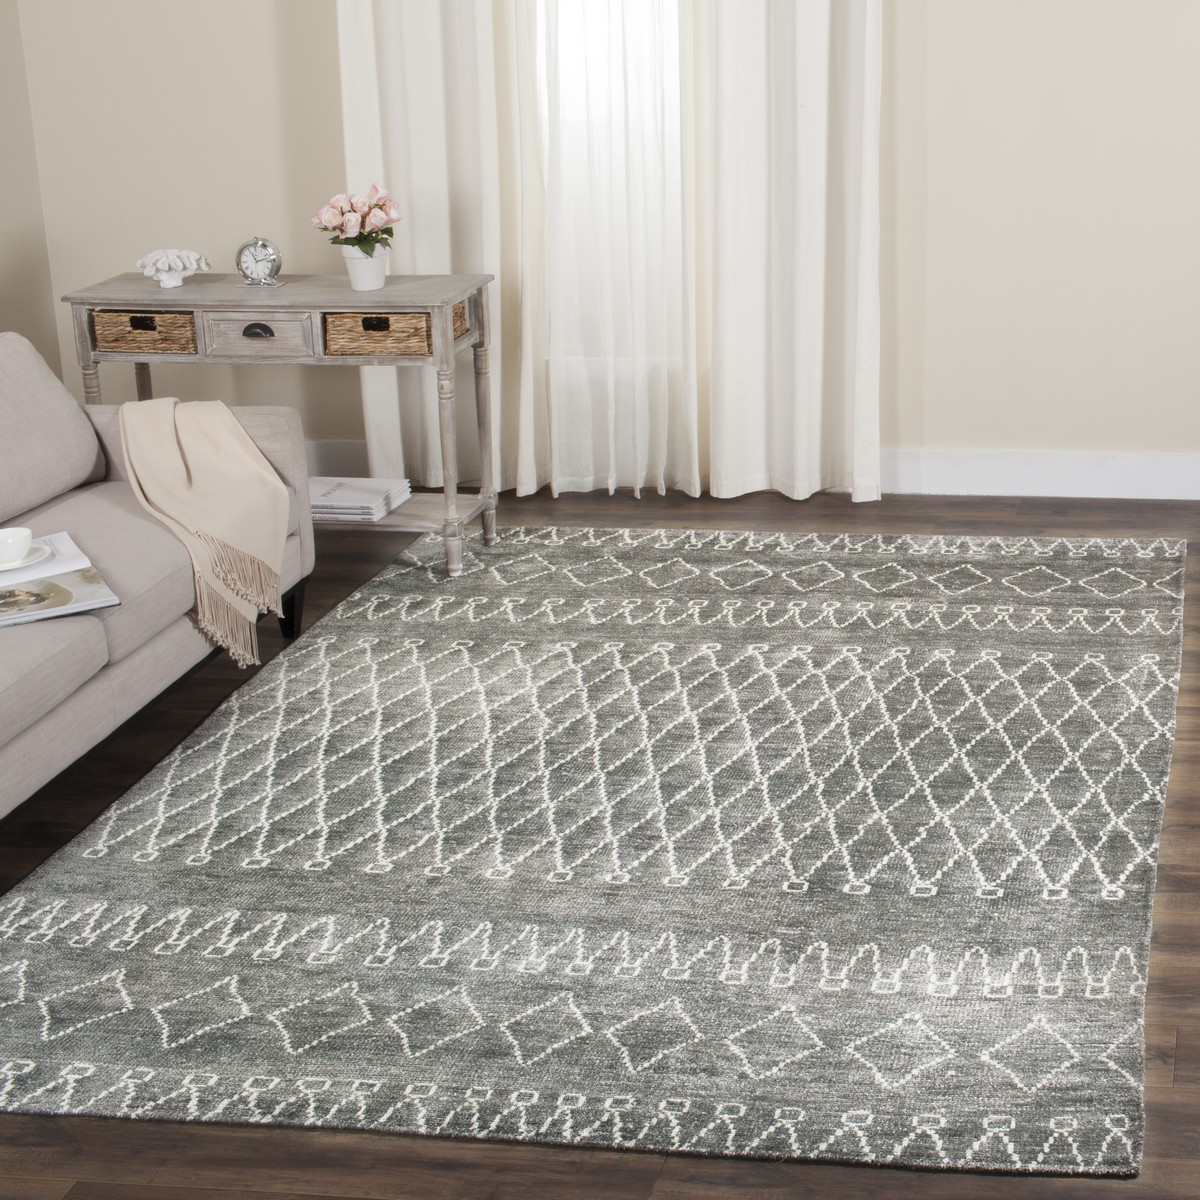 Rug Stw312a Stone Wash Area Rugs By Safavieh